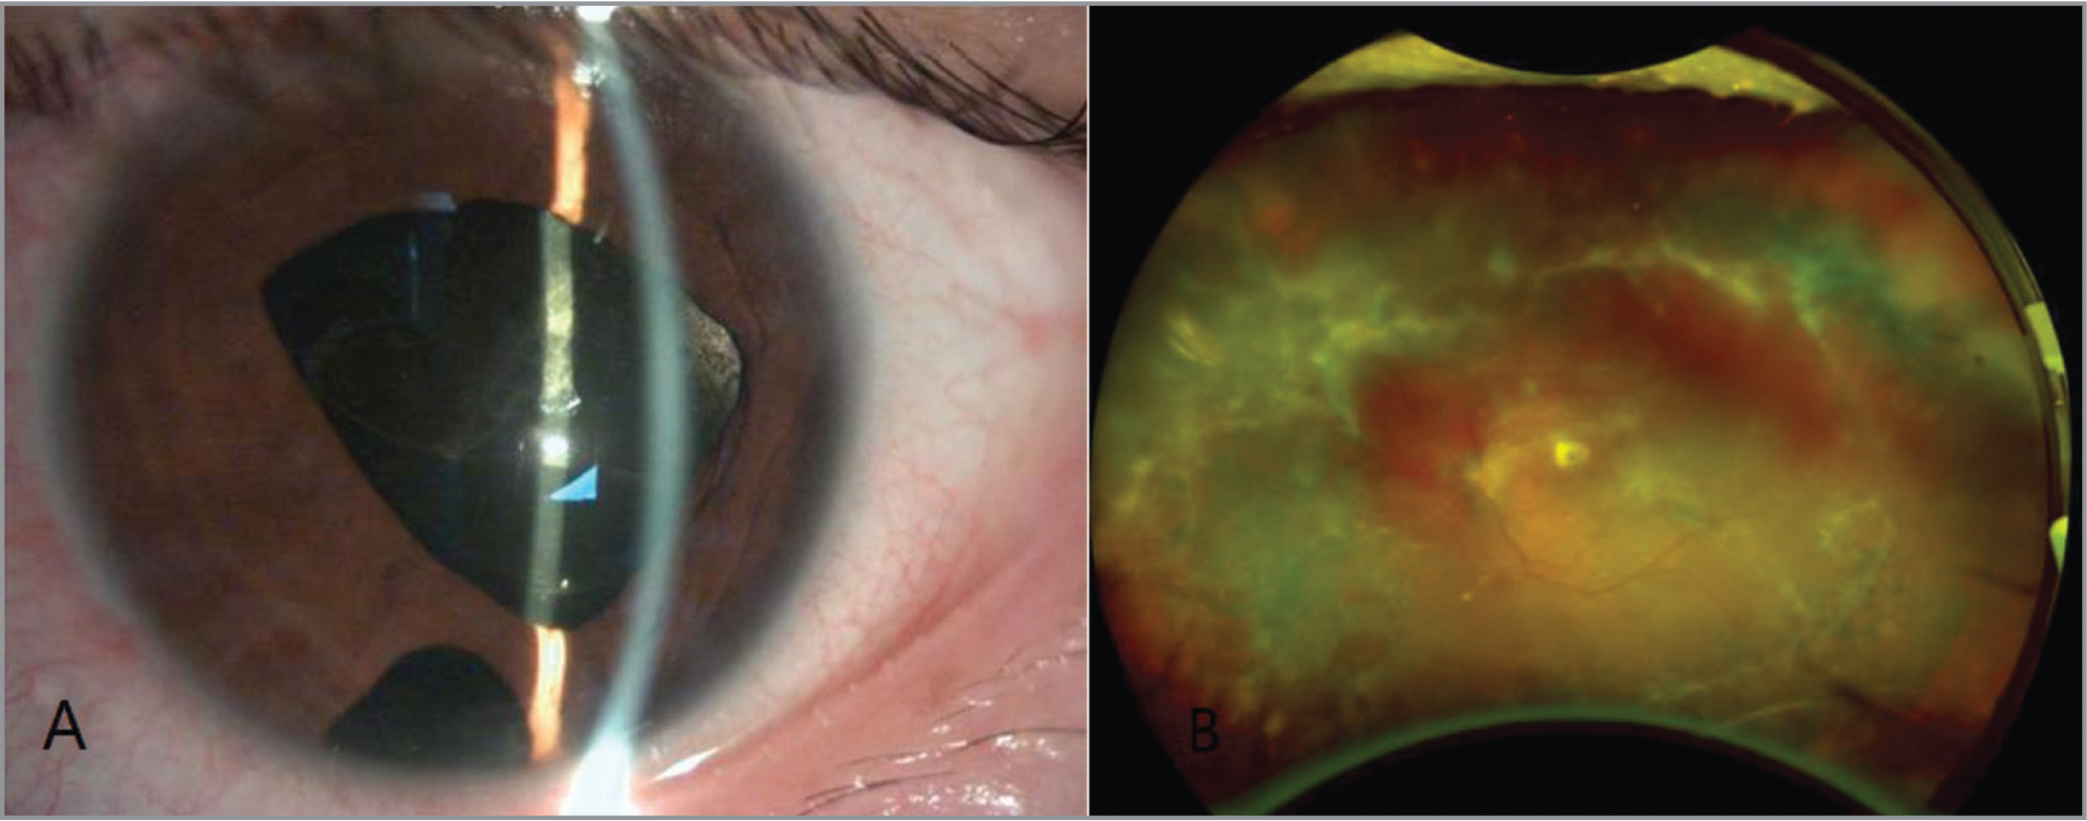 Photographs of the left eye 1 month after the implantation. (A) Normal-depth anterior chamber, dilated pupil, and foldable capsular vitreous body in place. (B) Attached retina, widespread necrosis lesions, and defects in periphery.